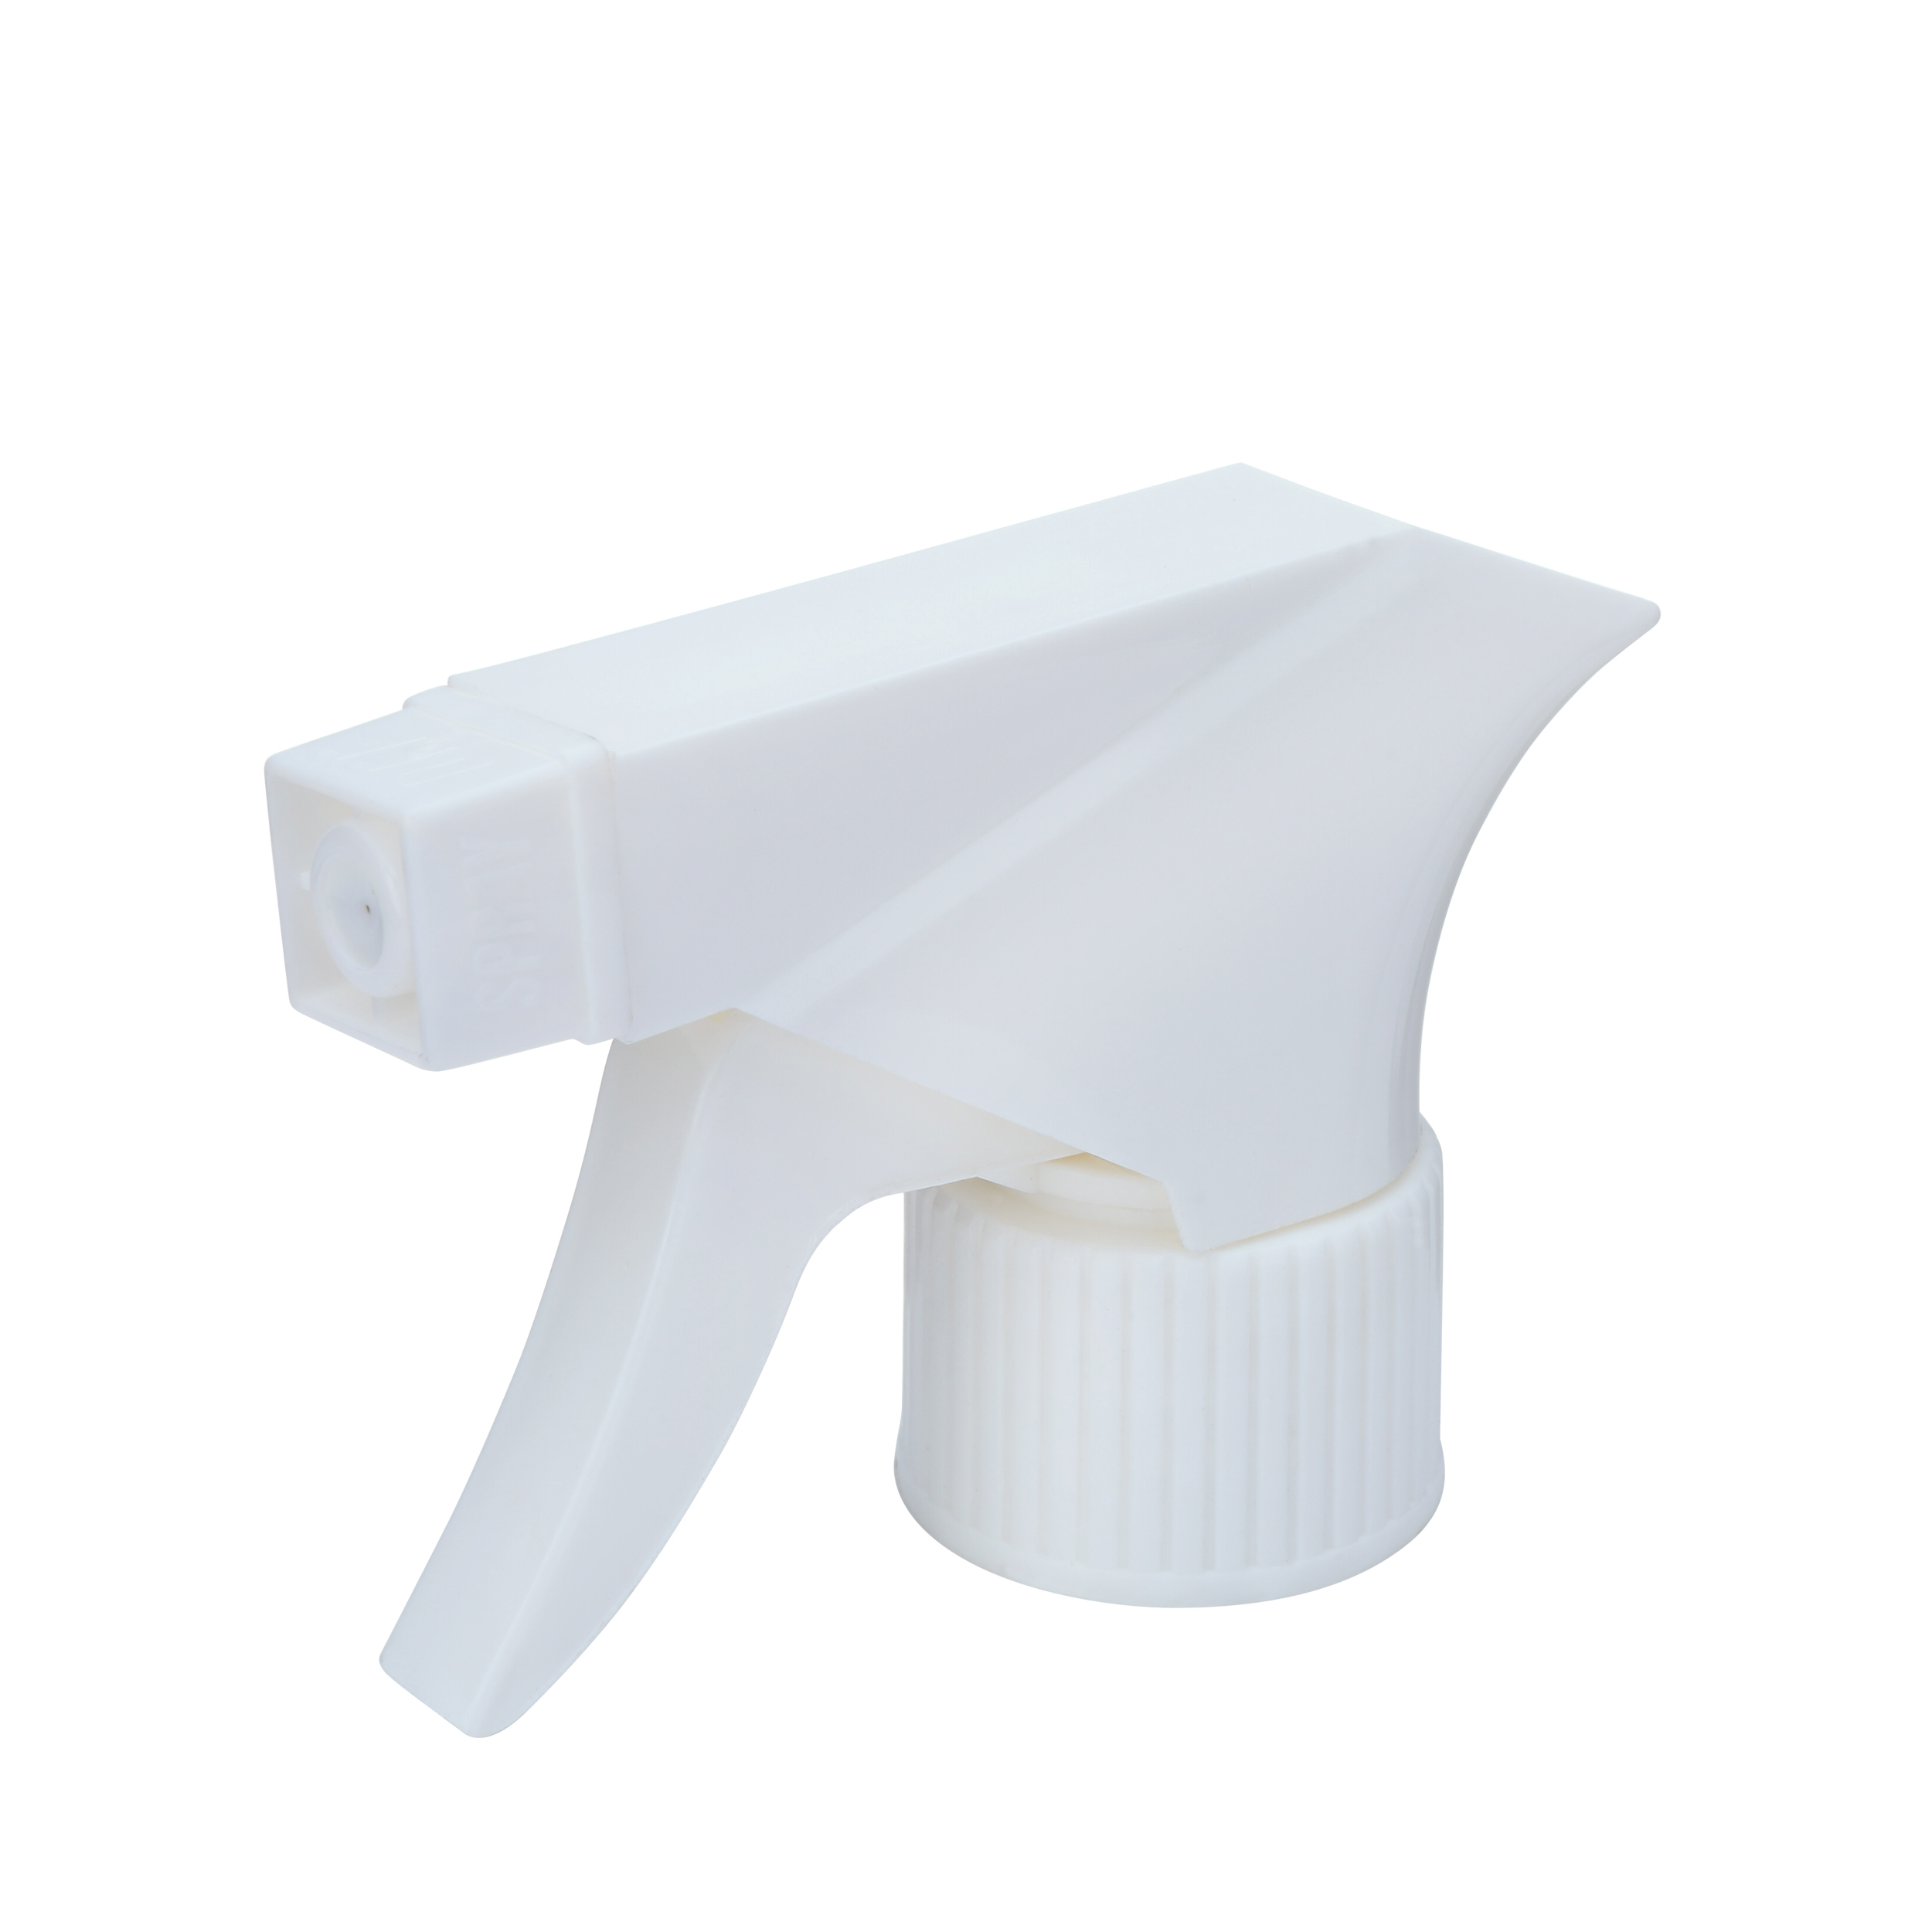 Eazy Use PP Plastic Type 28mm Plastic Trigger Sprayer China